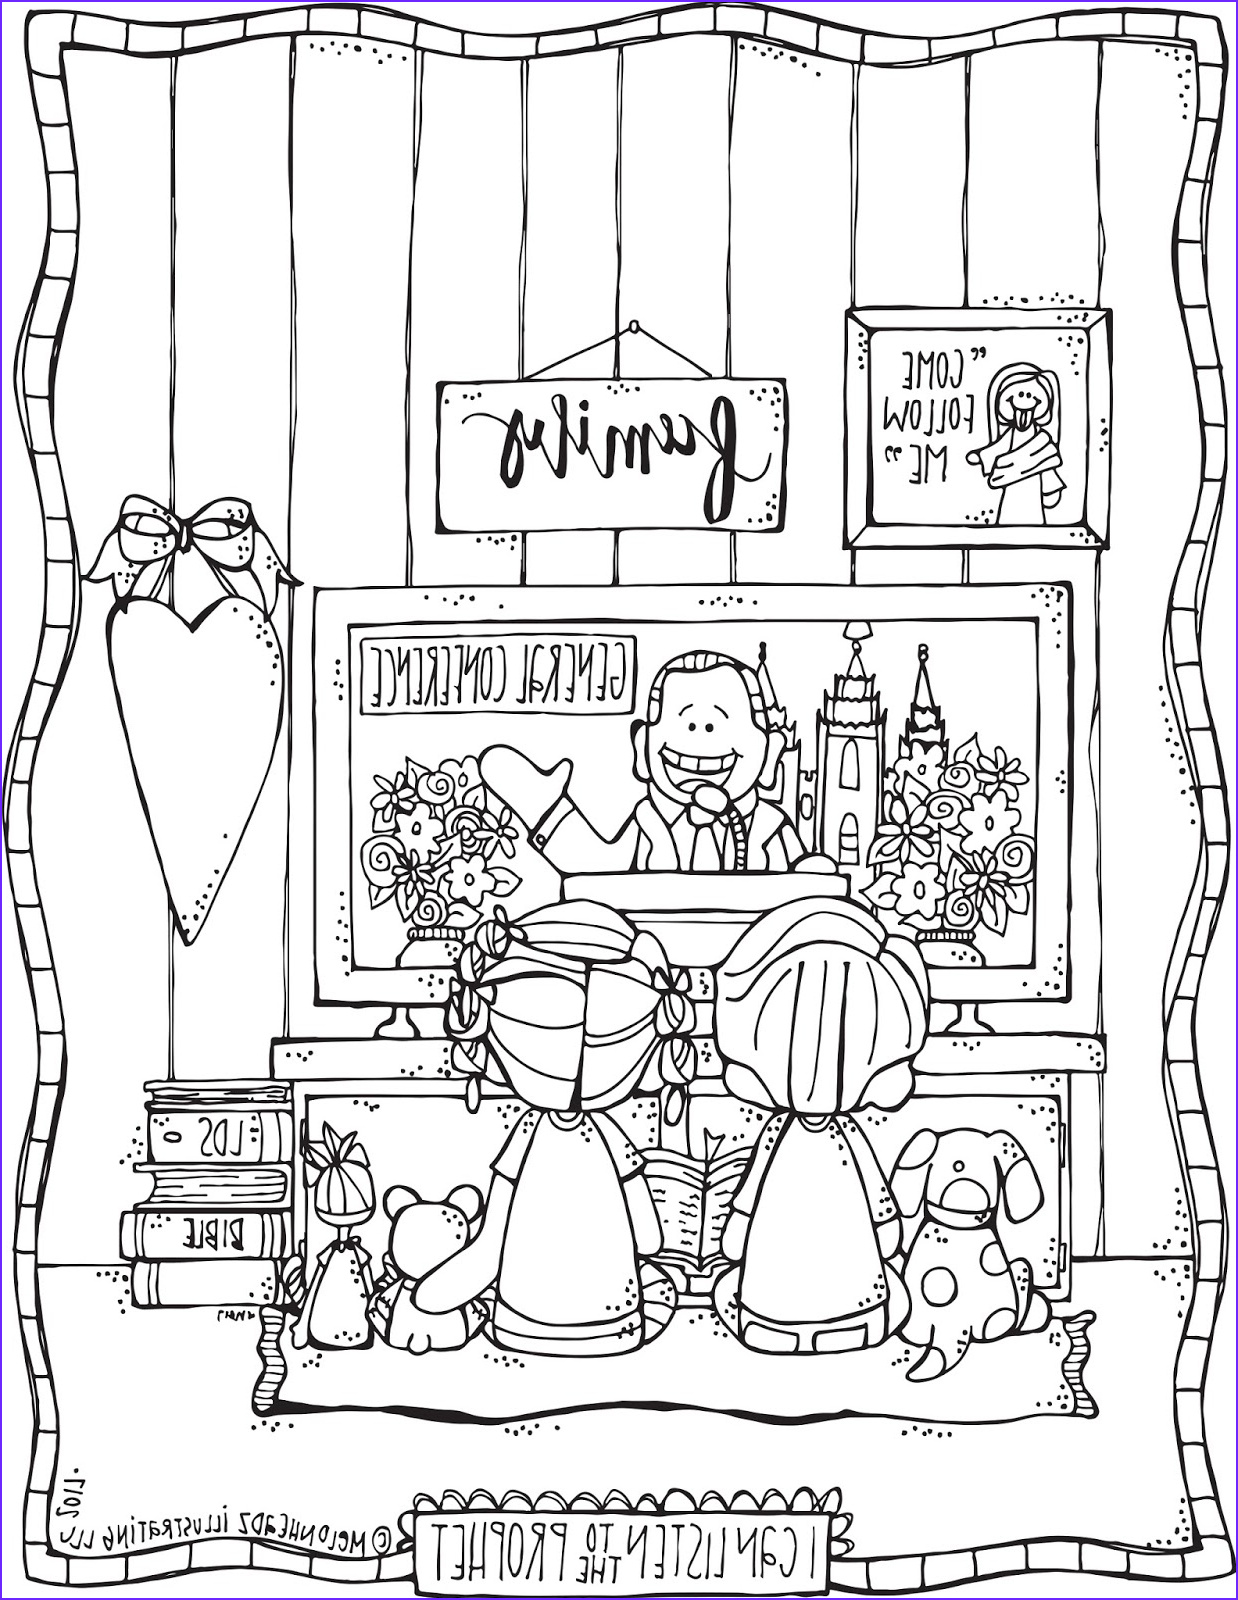 Conference Coloring Page Inspirational Gallery Melonheadz Lds Illustrating